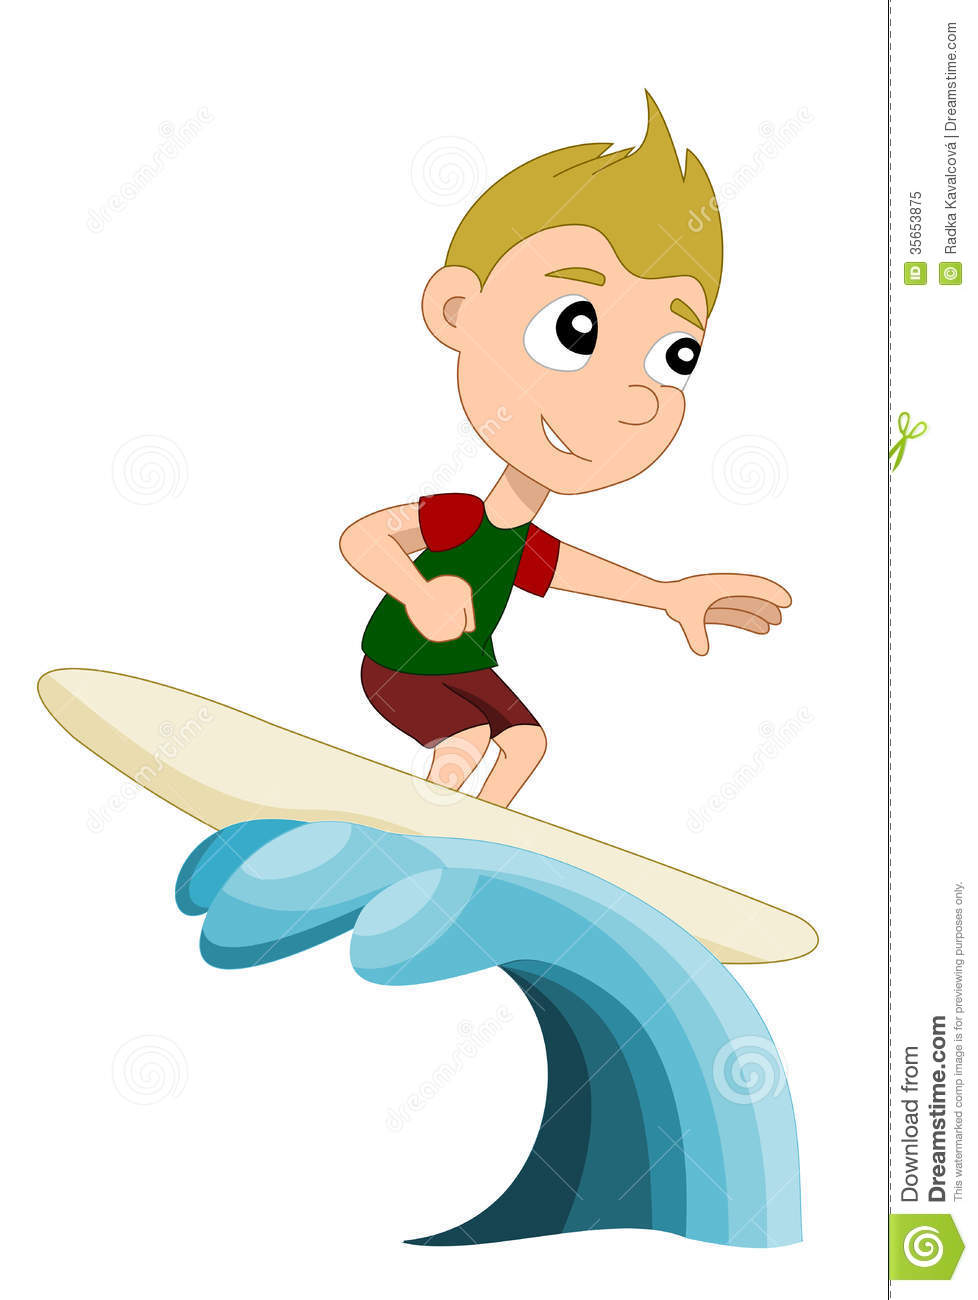 Surfing Boy Cartoon Royalty Free Stock Photo.